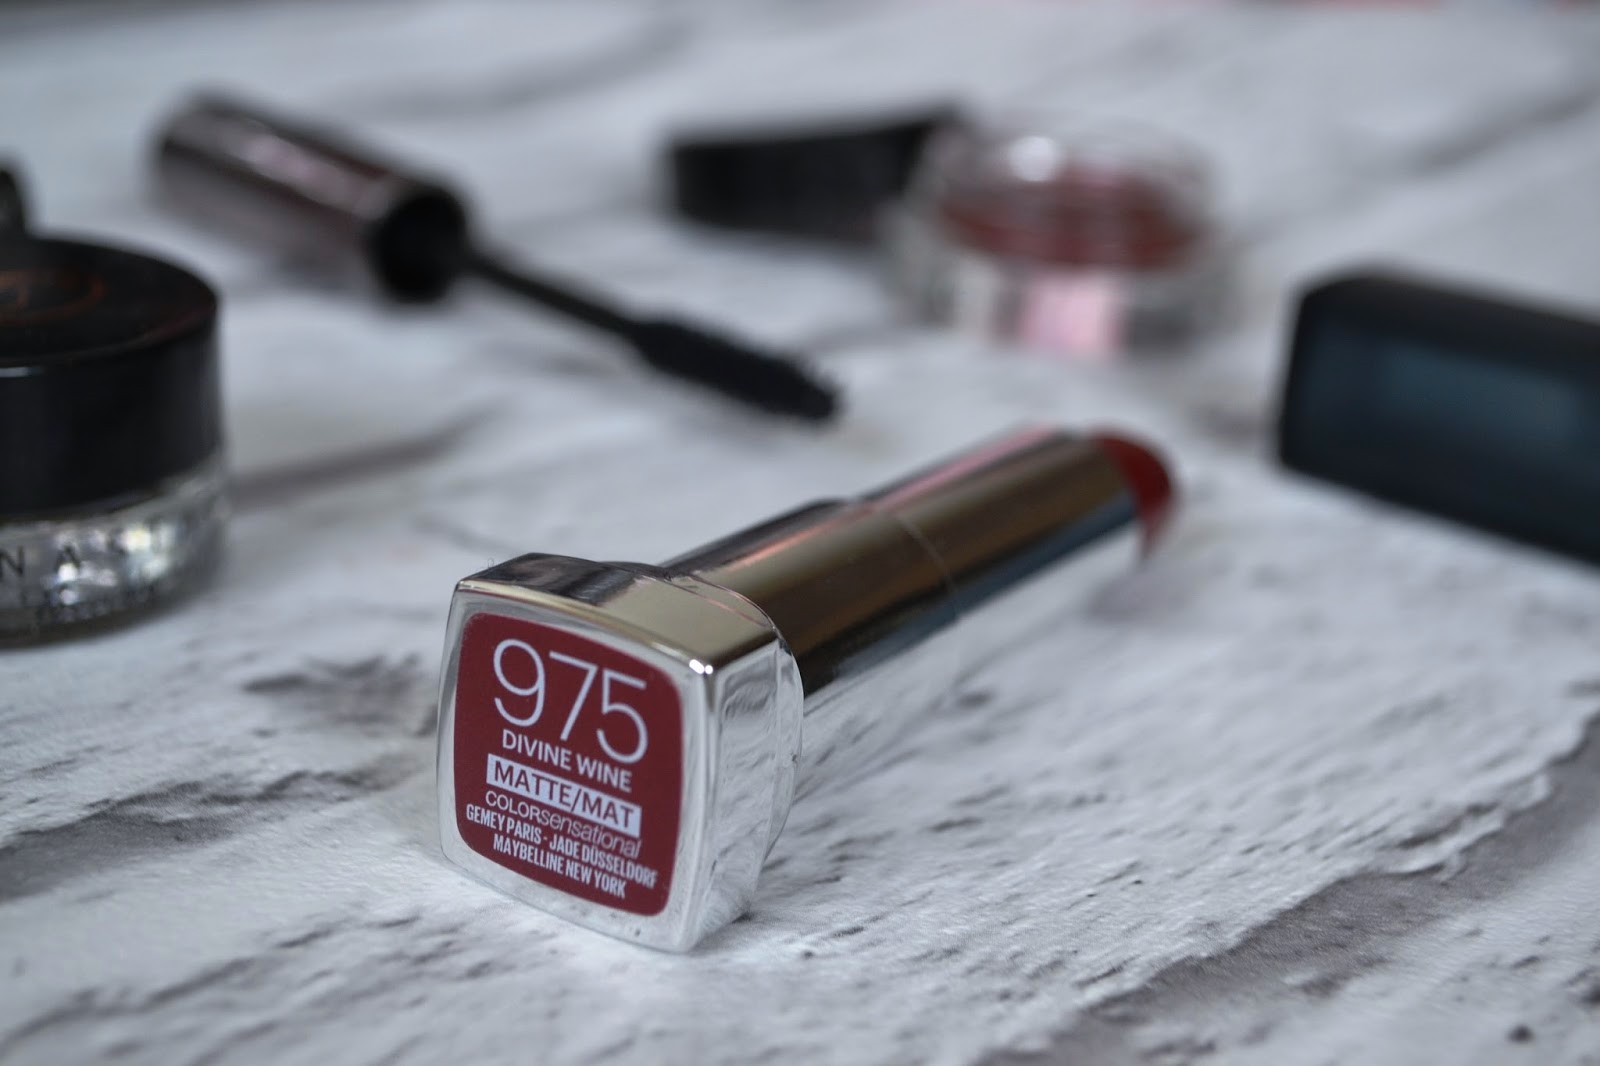 Maybelline Color Sensational Matte Lipsticks: Divine Wine 975